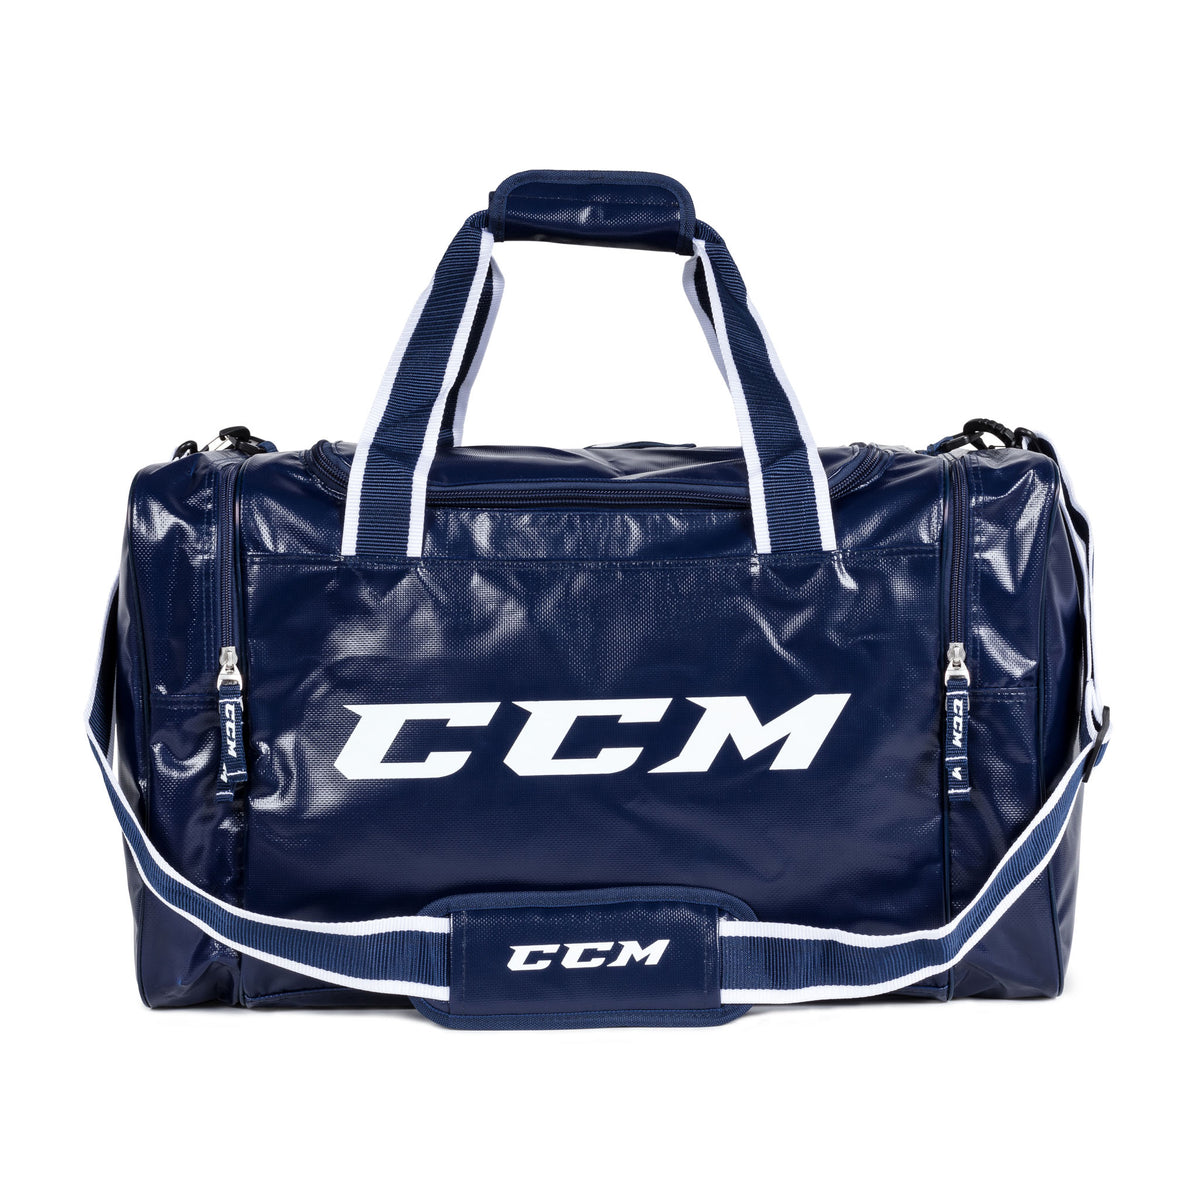 CCM Sport Team Duffle Bag